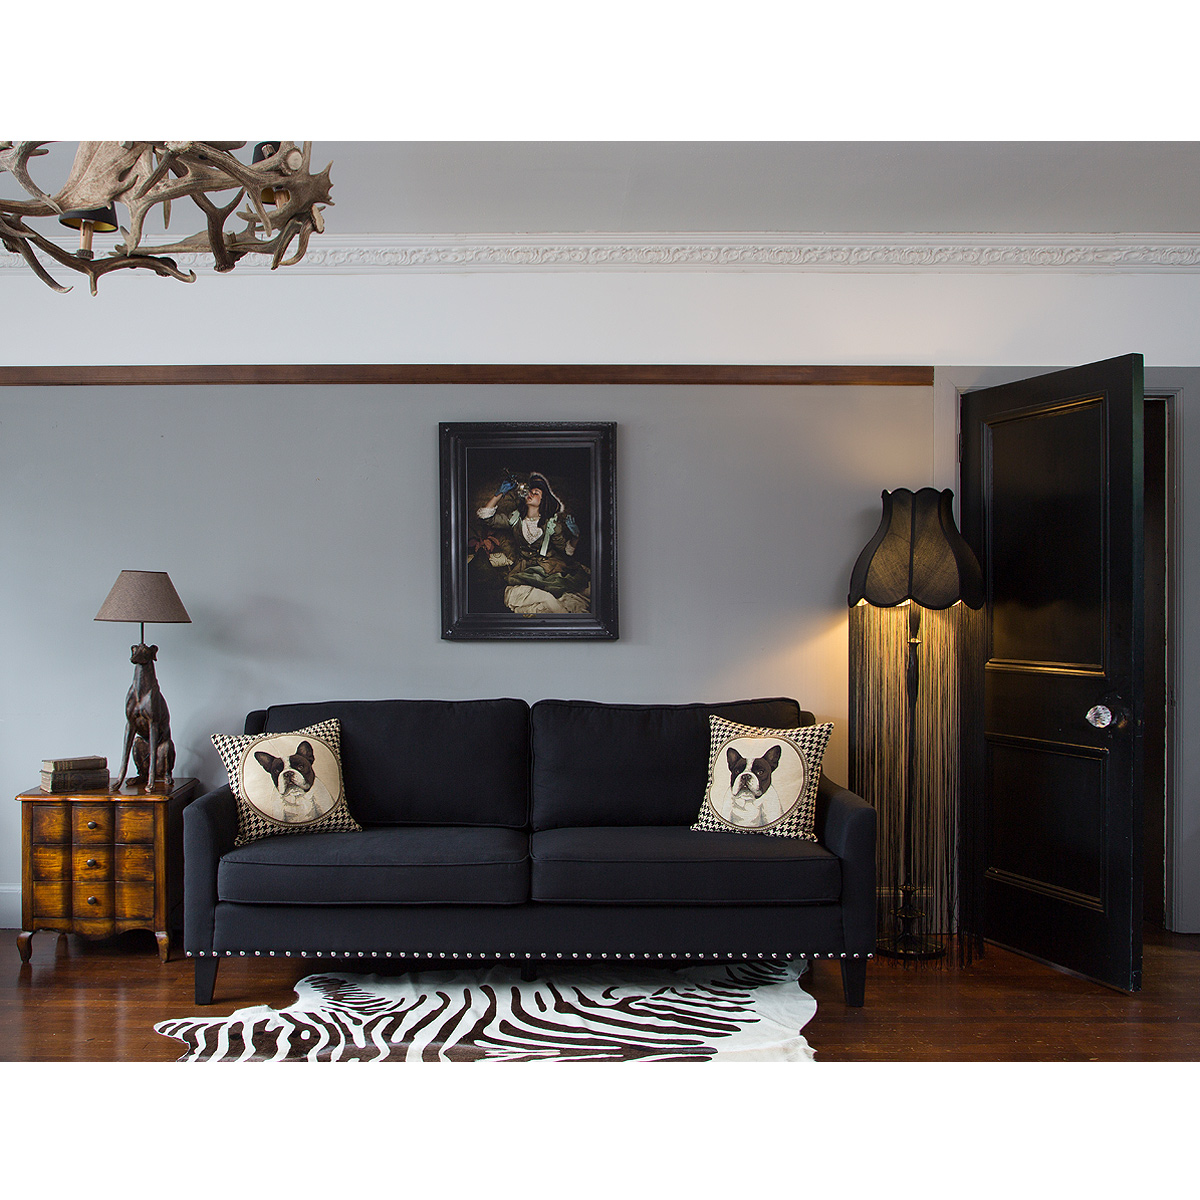 bigwig studded black sofa french bedroom company. Black Bedroom Furniture Sets. Home Design Ideas